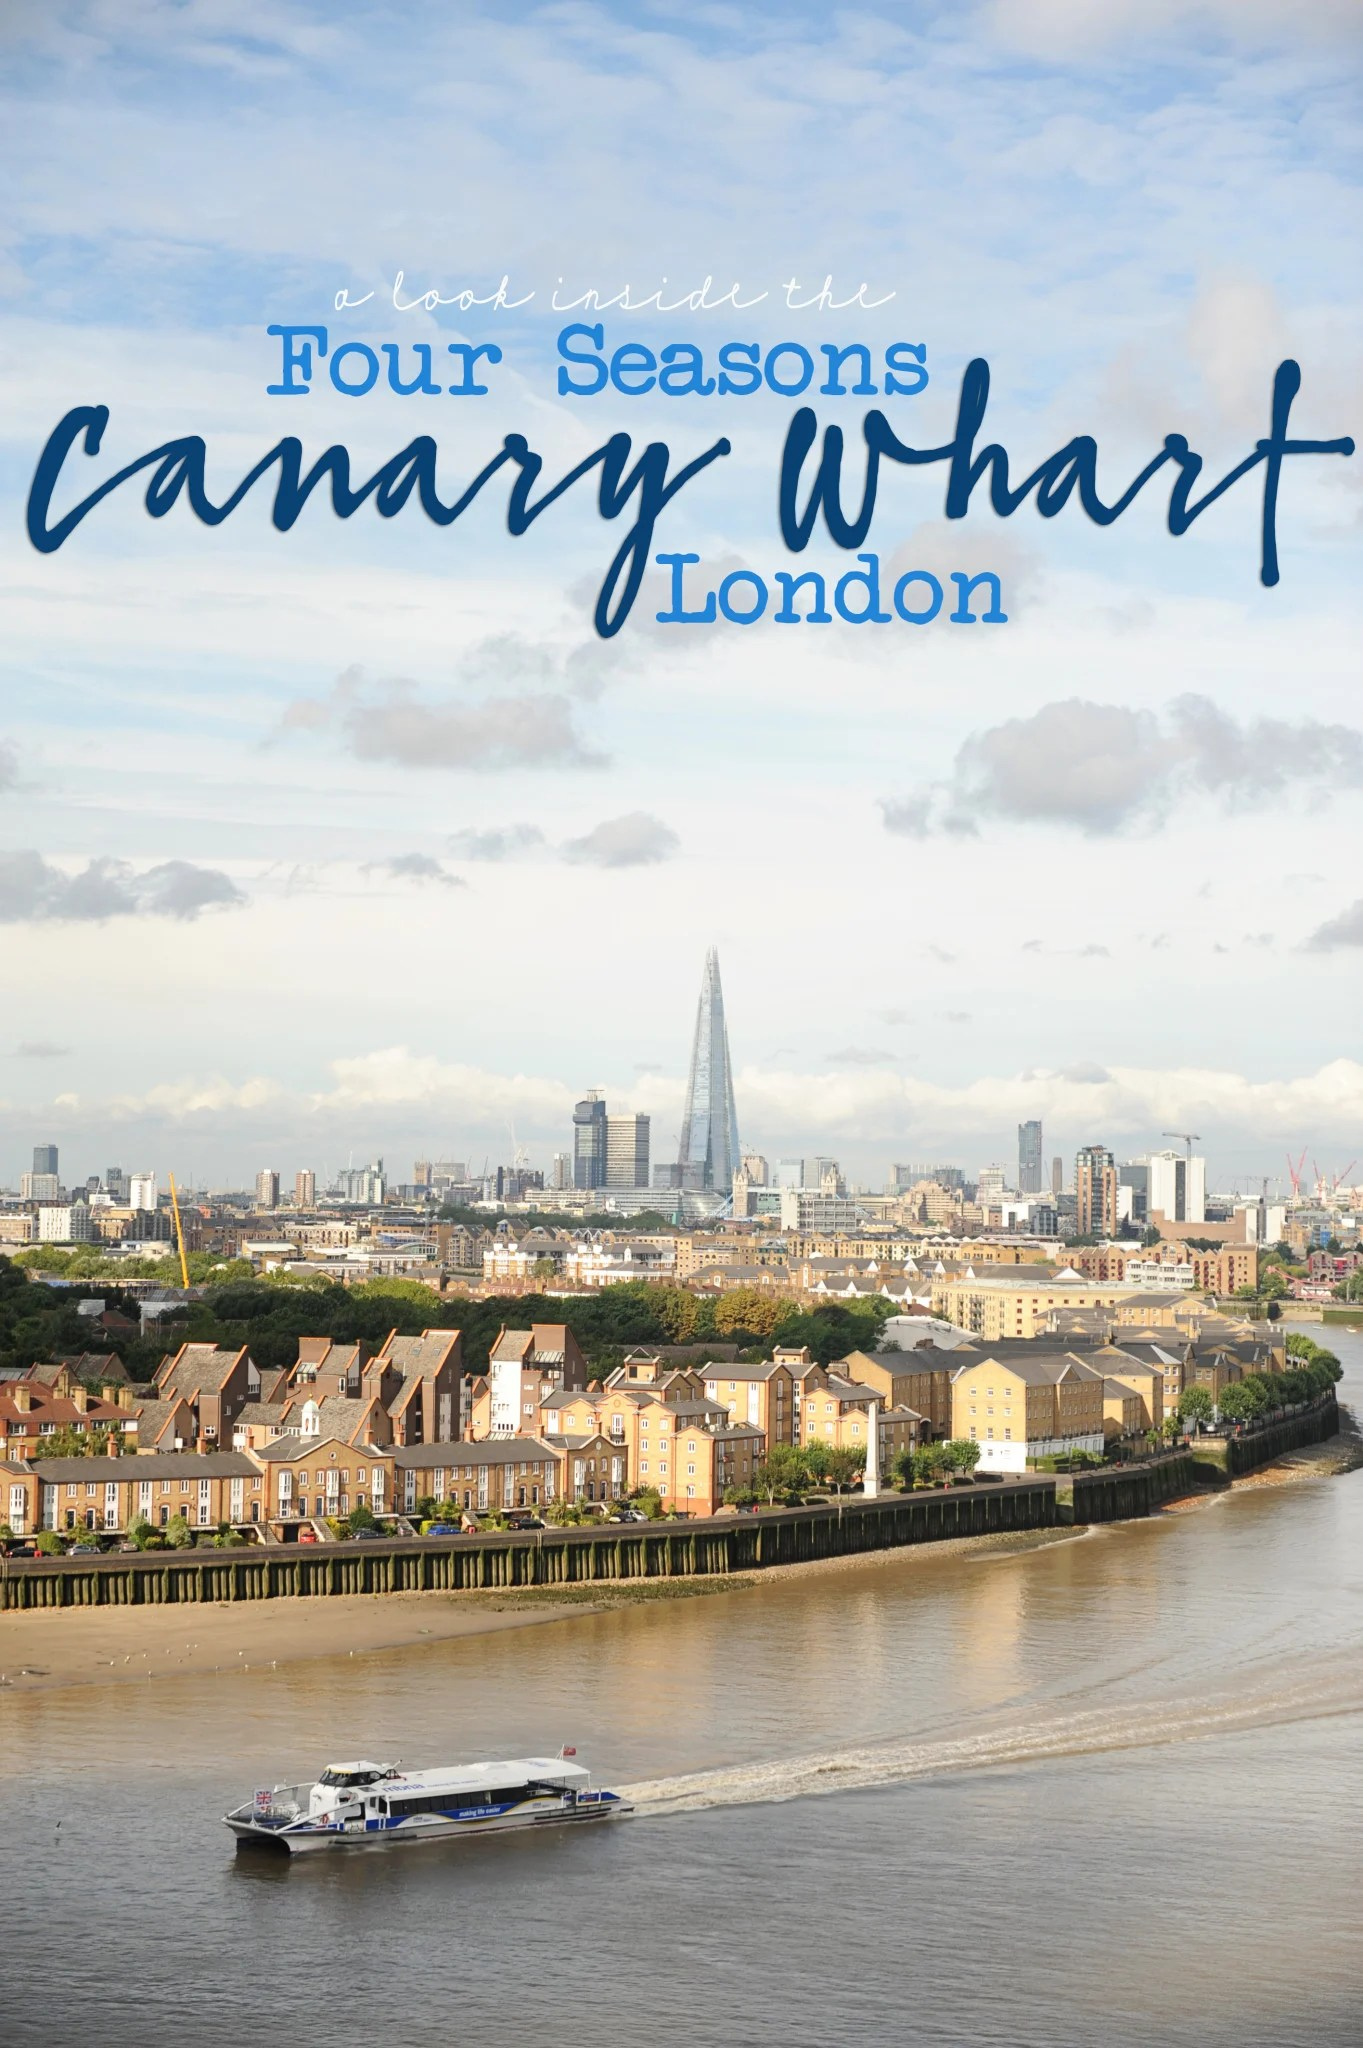 Our Stay at The Four Seasons Canary Wharf : A different Side of London